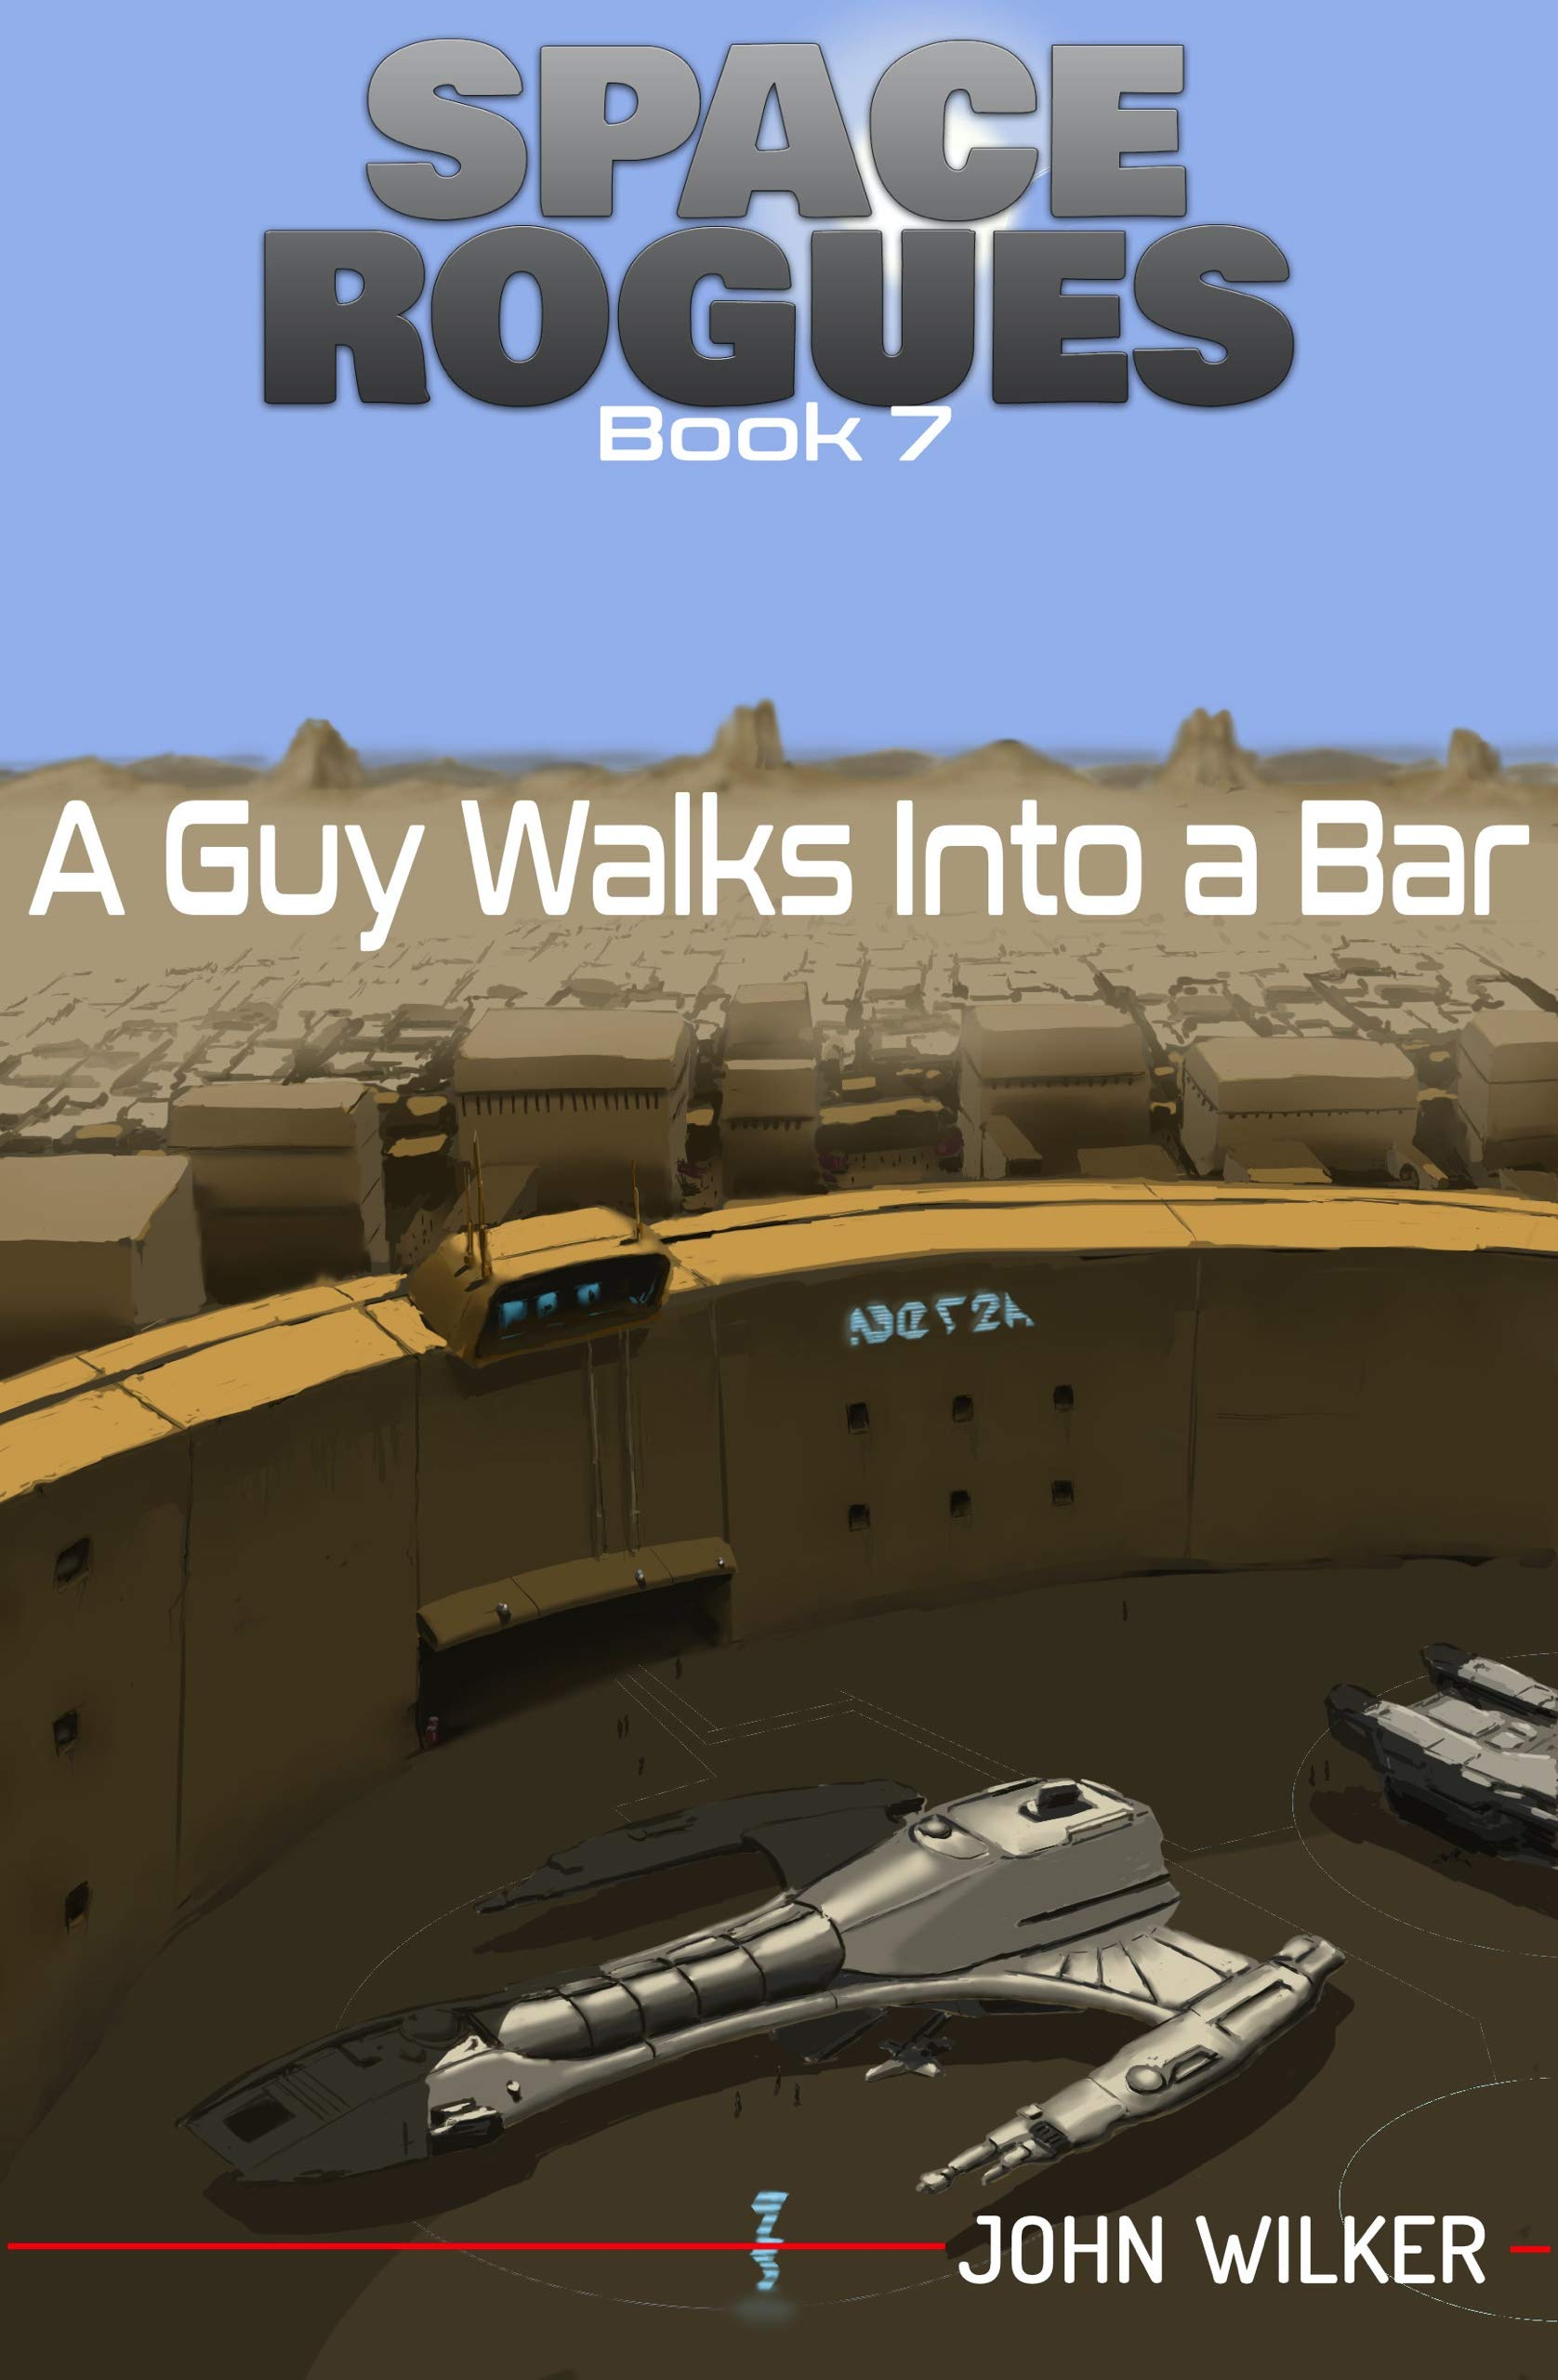 Space Rogues 7: A Guy Walks into a Bar